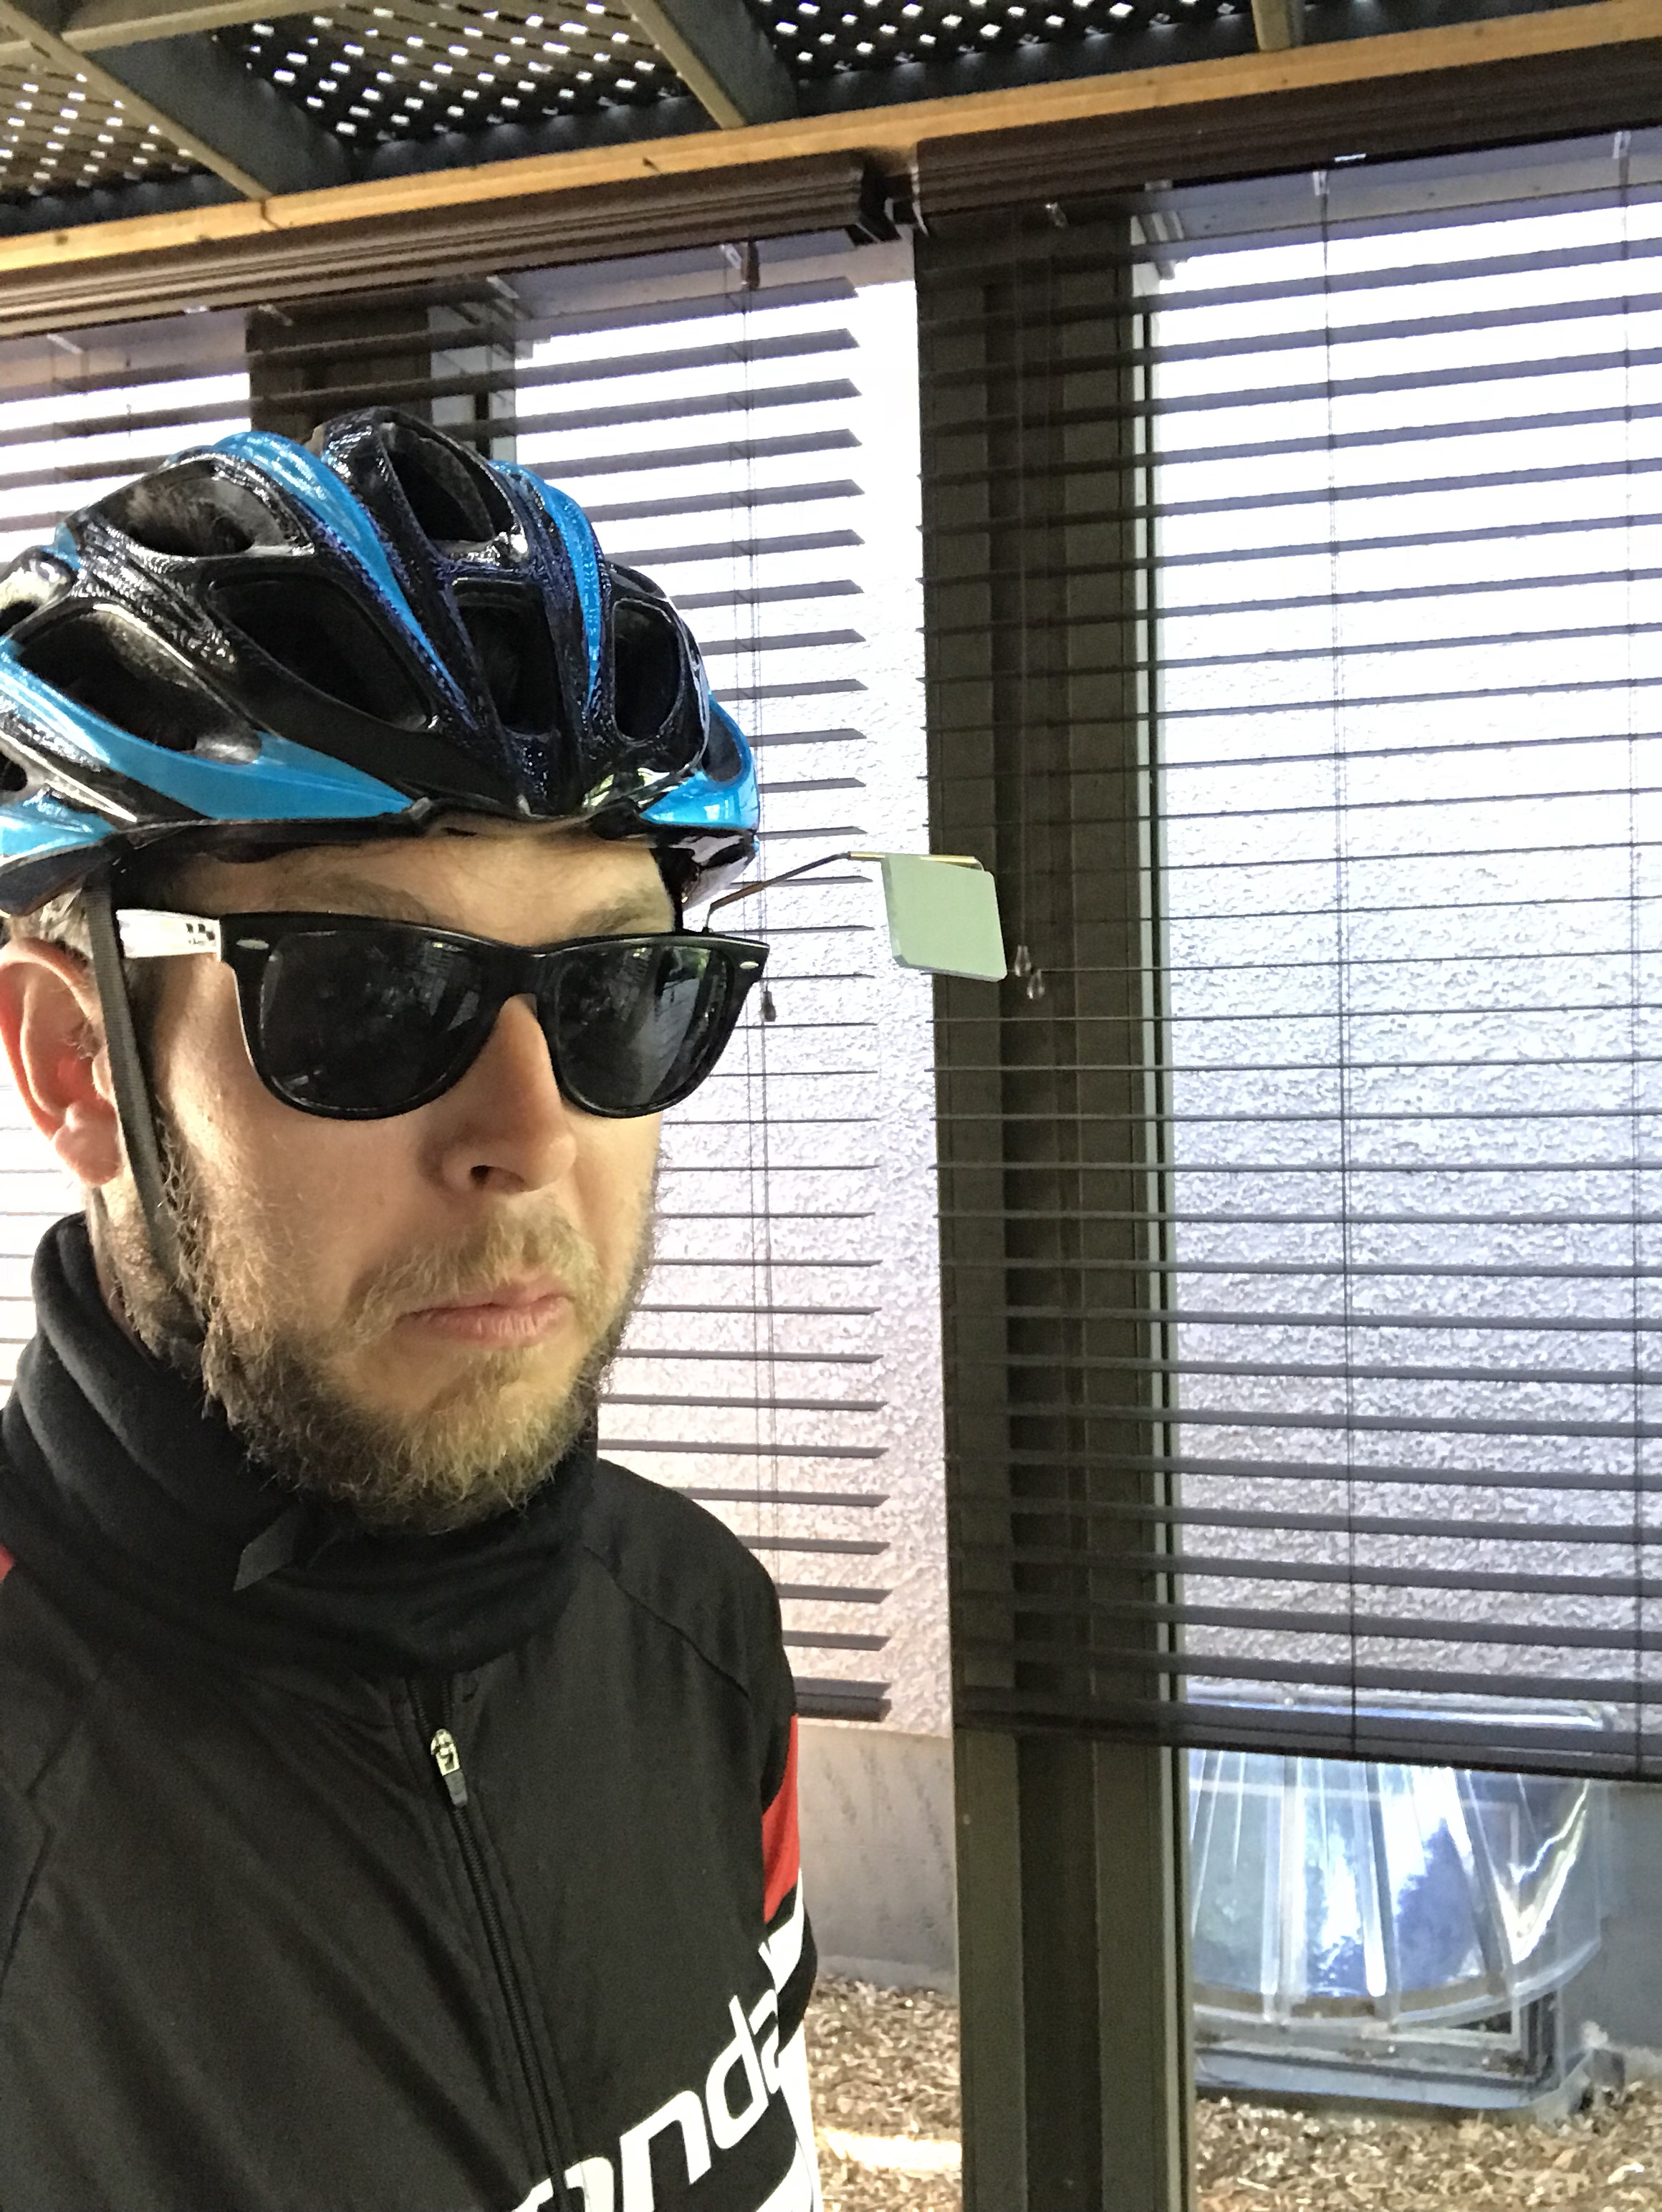 Ben pictured in cycling clothing, a helmet, glasses, and a mirror protruding from the glasses